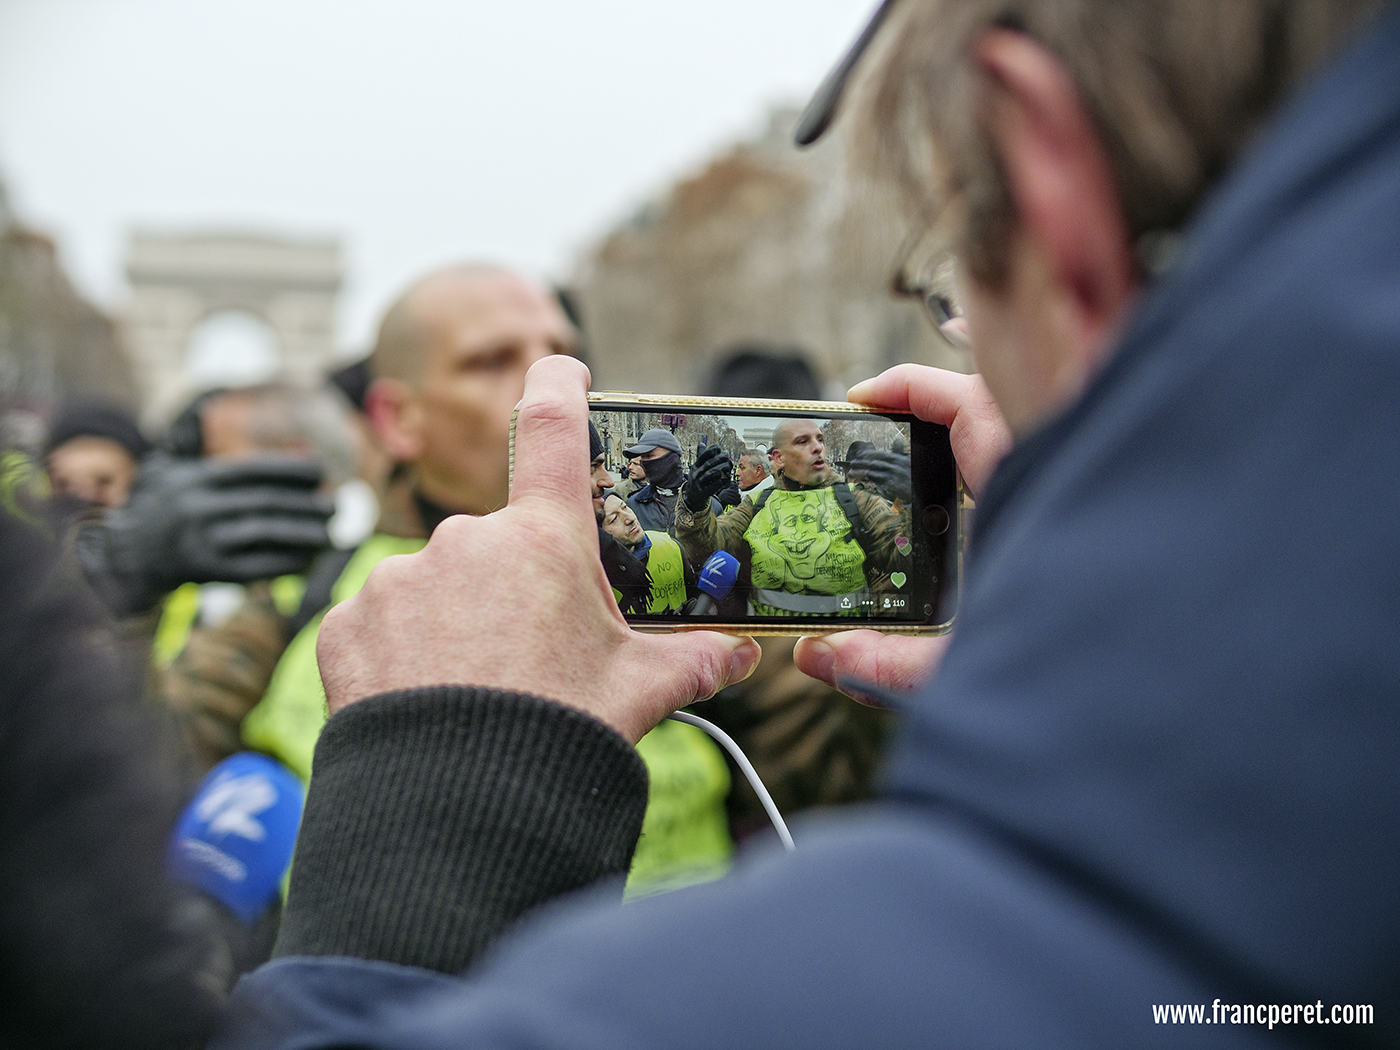 More importantly, many protesters holding a smart phone were able to record events never shown by official medias.